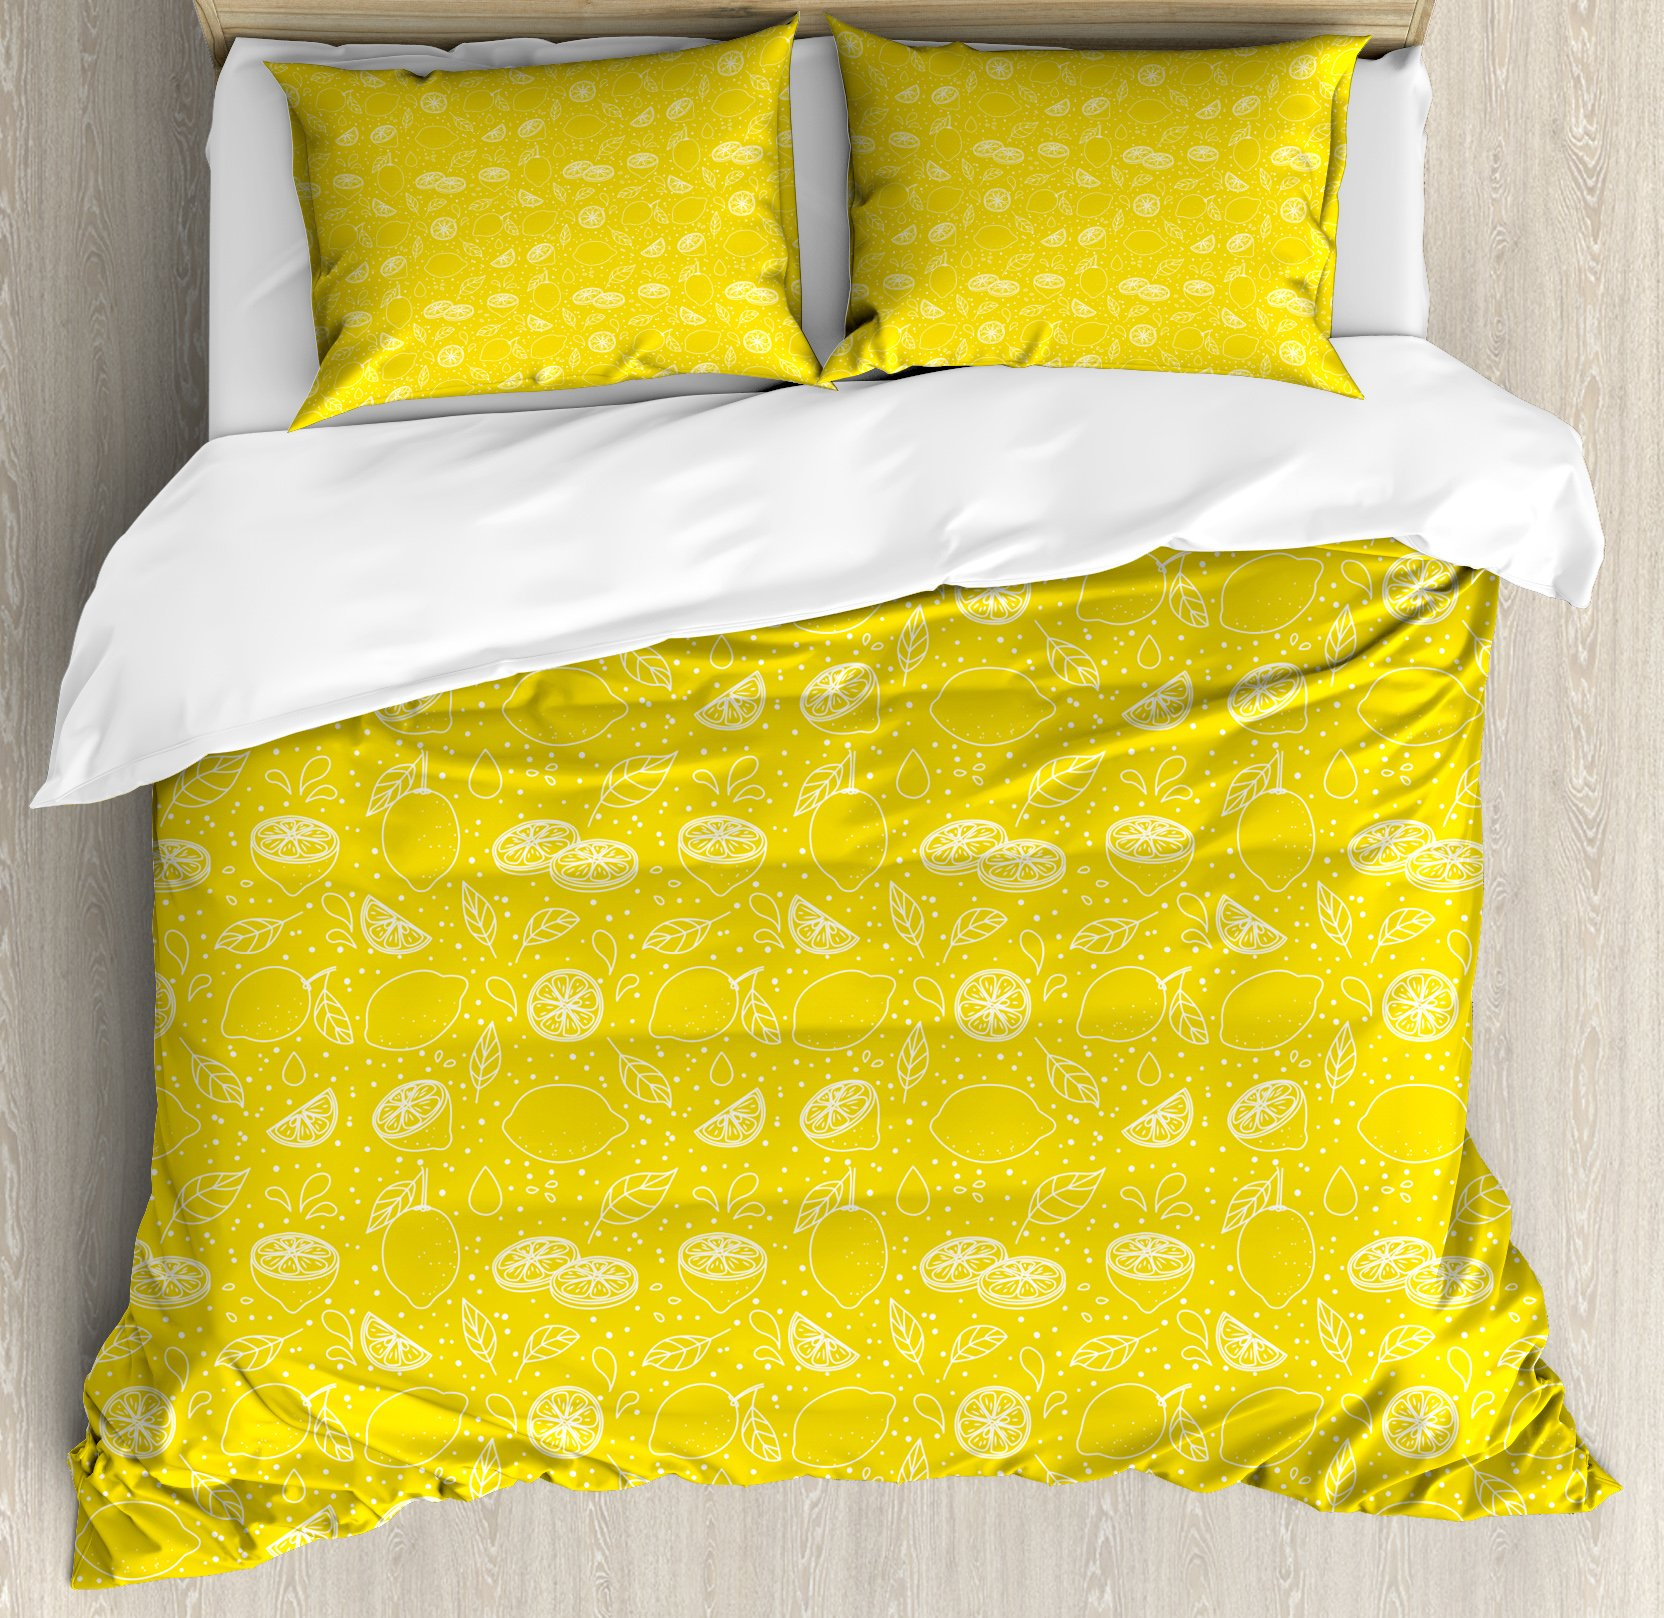 Yellow Duvet Cover Set Queen Size by Ambesonne, Juicy Lemons Citrus Fresh Slices with Leaves and Dots Health Vitamins Food Pattern, Decorative 3 Piece Bedding Set with 2 Pillow Shams, Yellow White